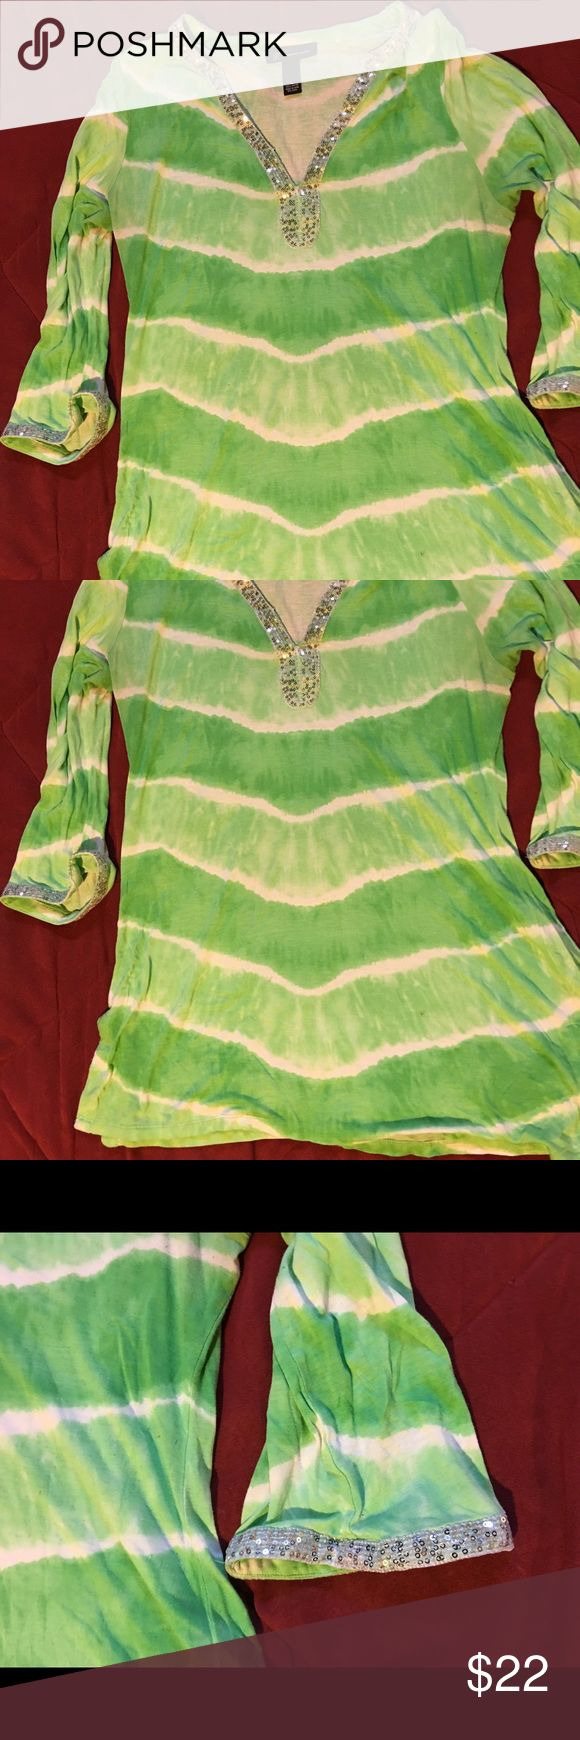 MACY'S INC TYE DYE GLITTER TRIM TUNIC TOP LARGE Size large INC International Concepts Tops Tees - Long Sleeve